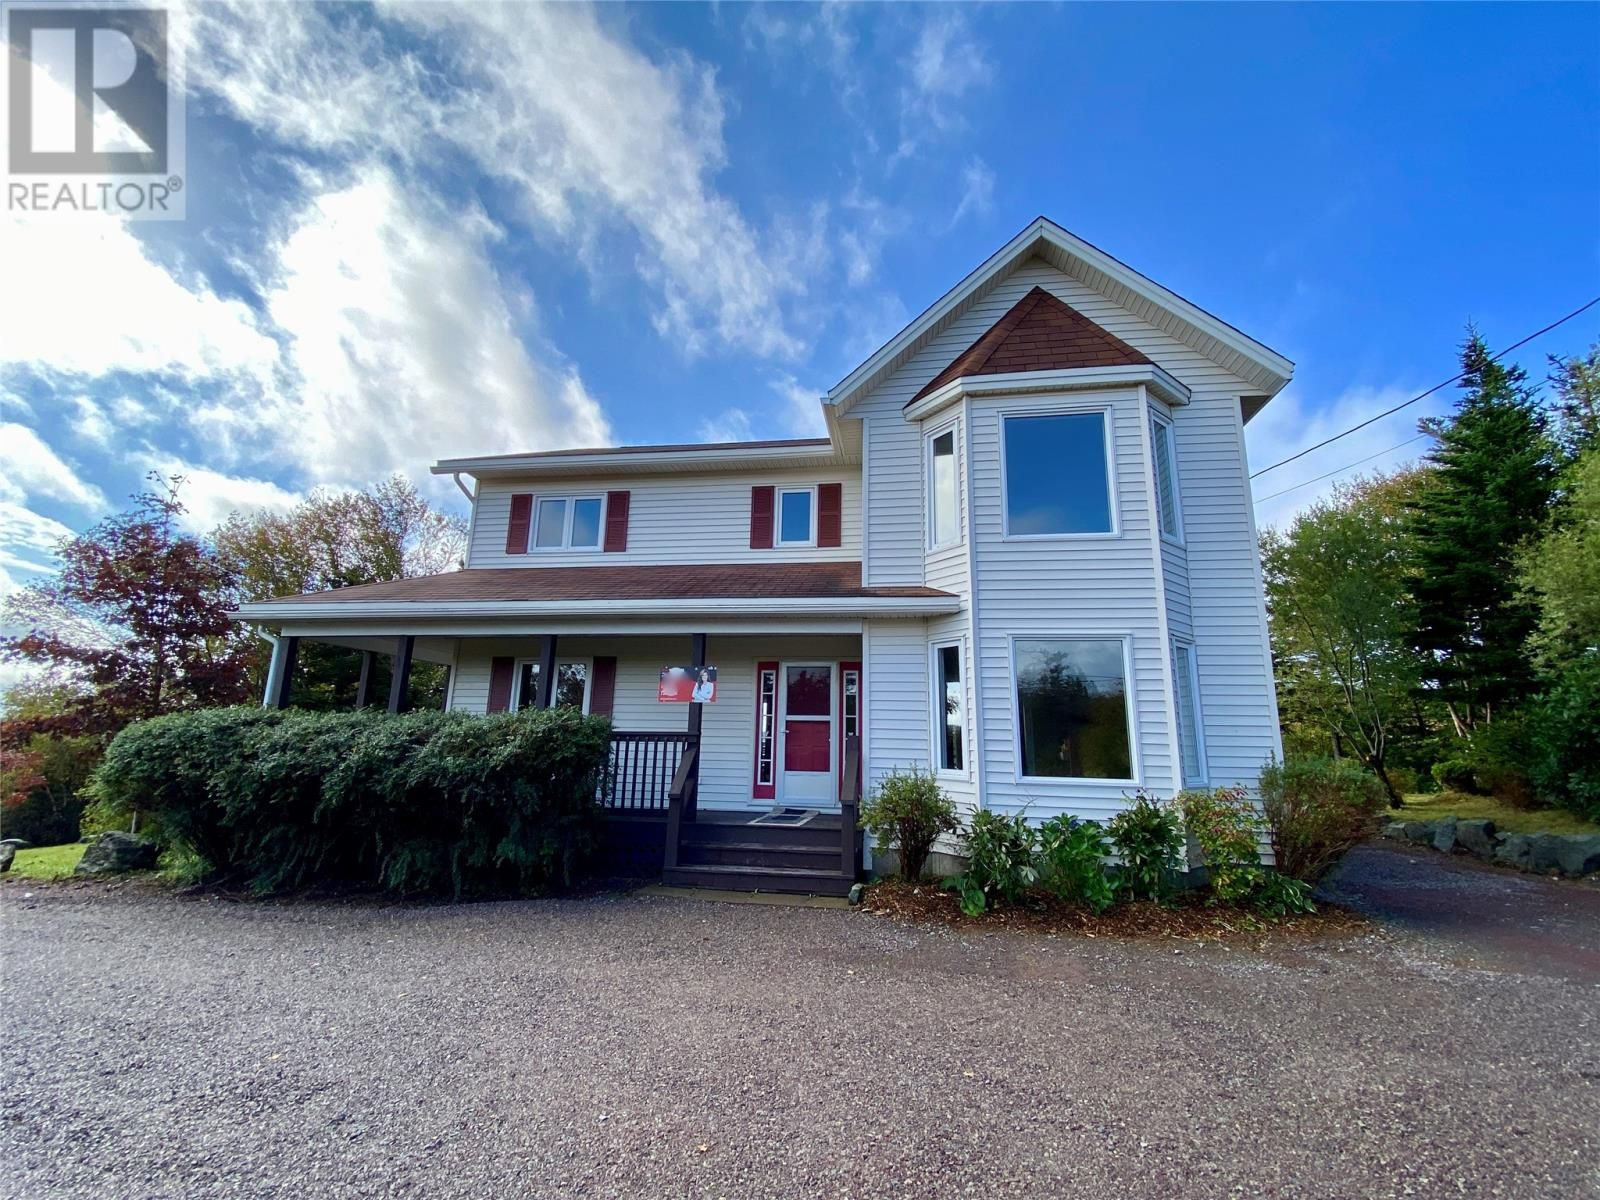 Main Photo: 28 HORSECHOPS Road in Horse Chops: House for sale : MLS®# 1237597